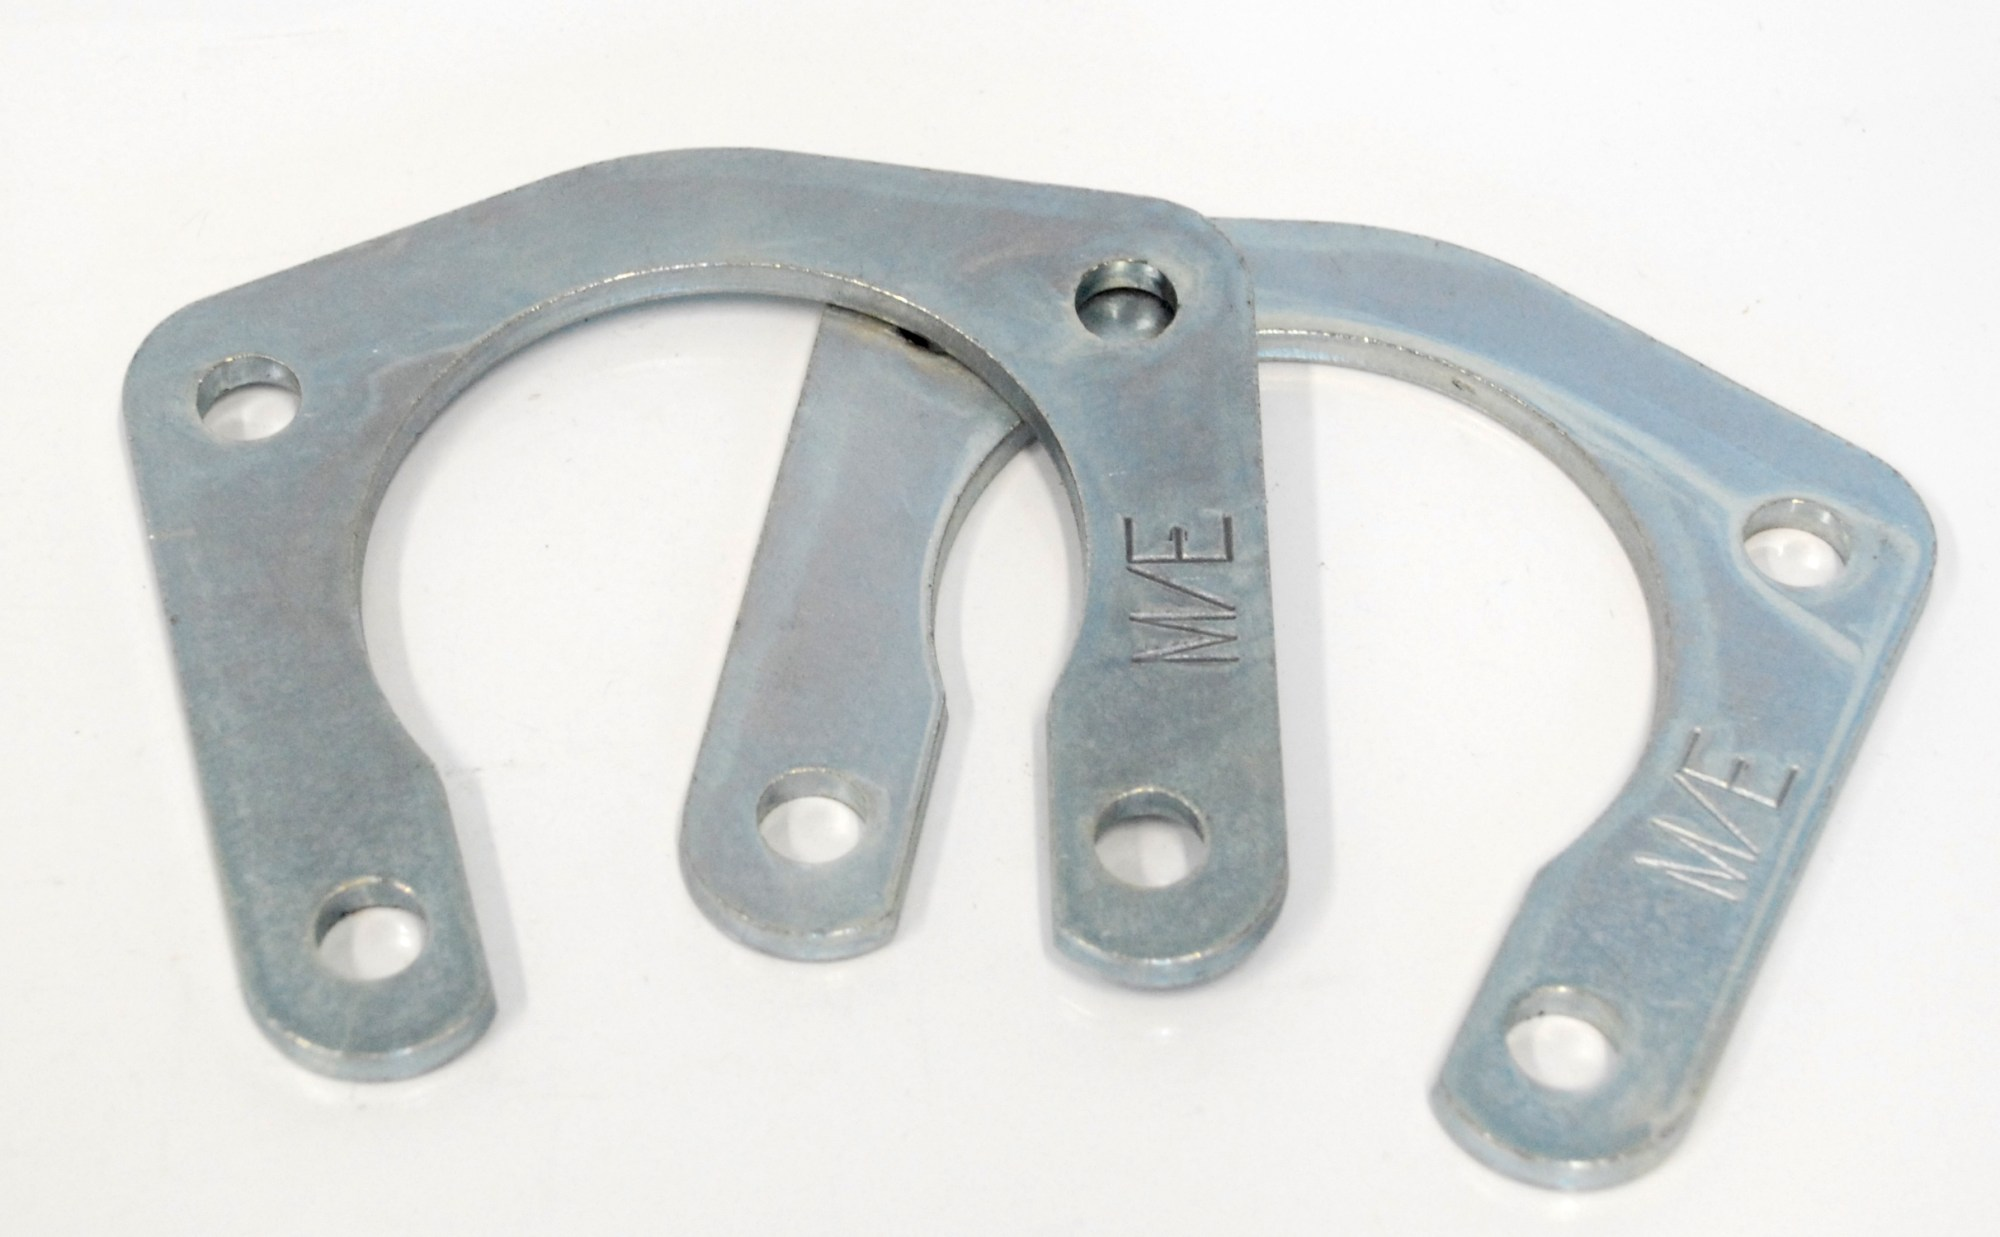 hight resolution of 9850 retainer plates 1949 1964 olds pontiac